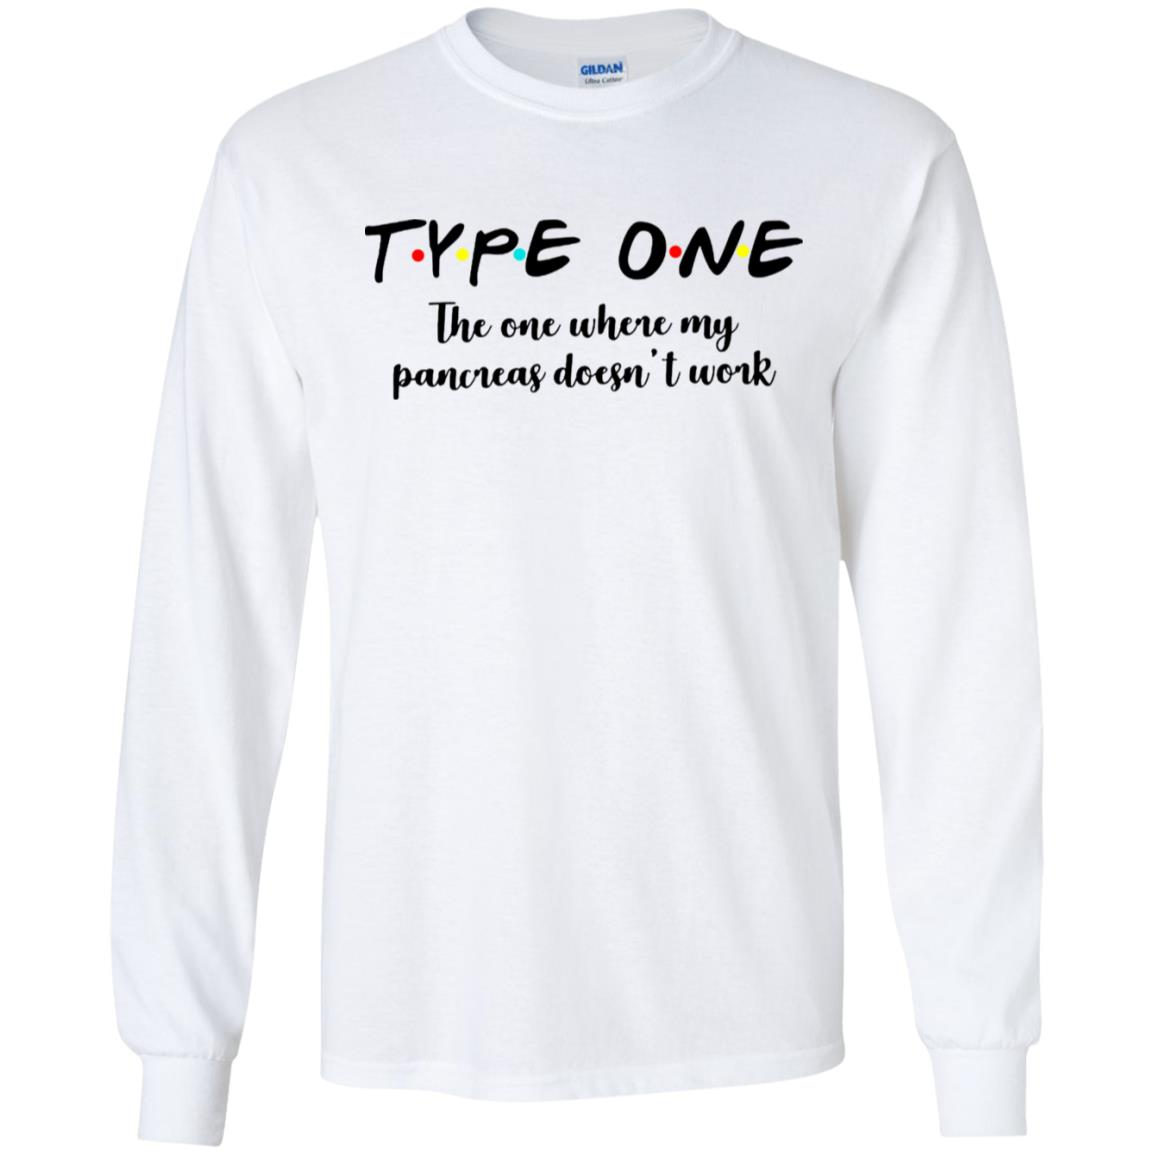 Type one the one where my pancreas doesn't work